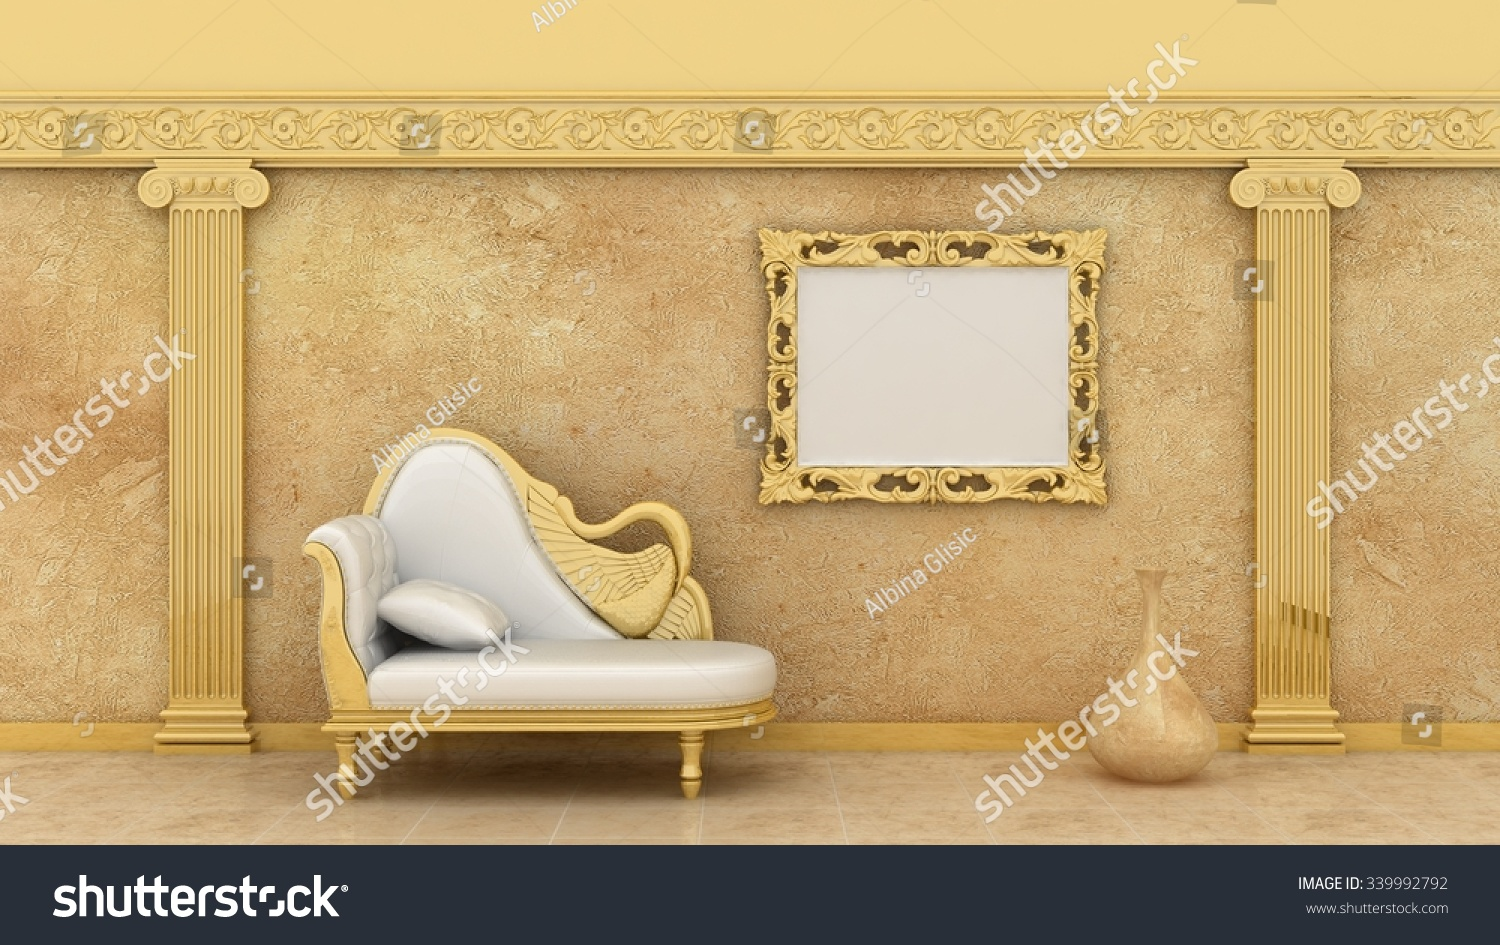 Empty Picture Golden Frames Luxury Interior Stock Illustration ...